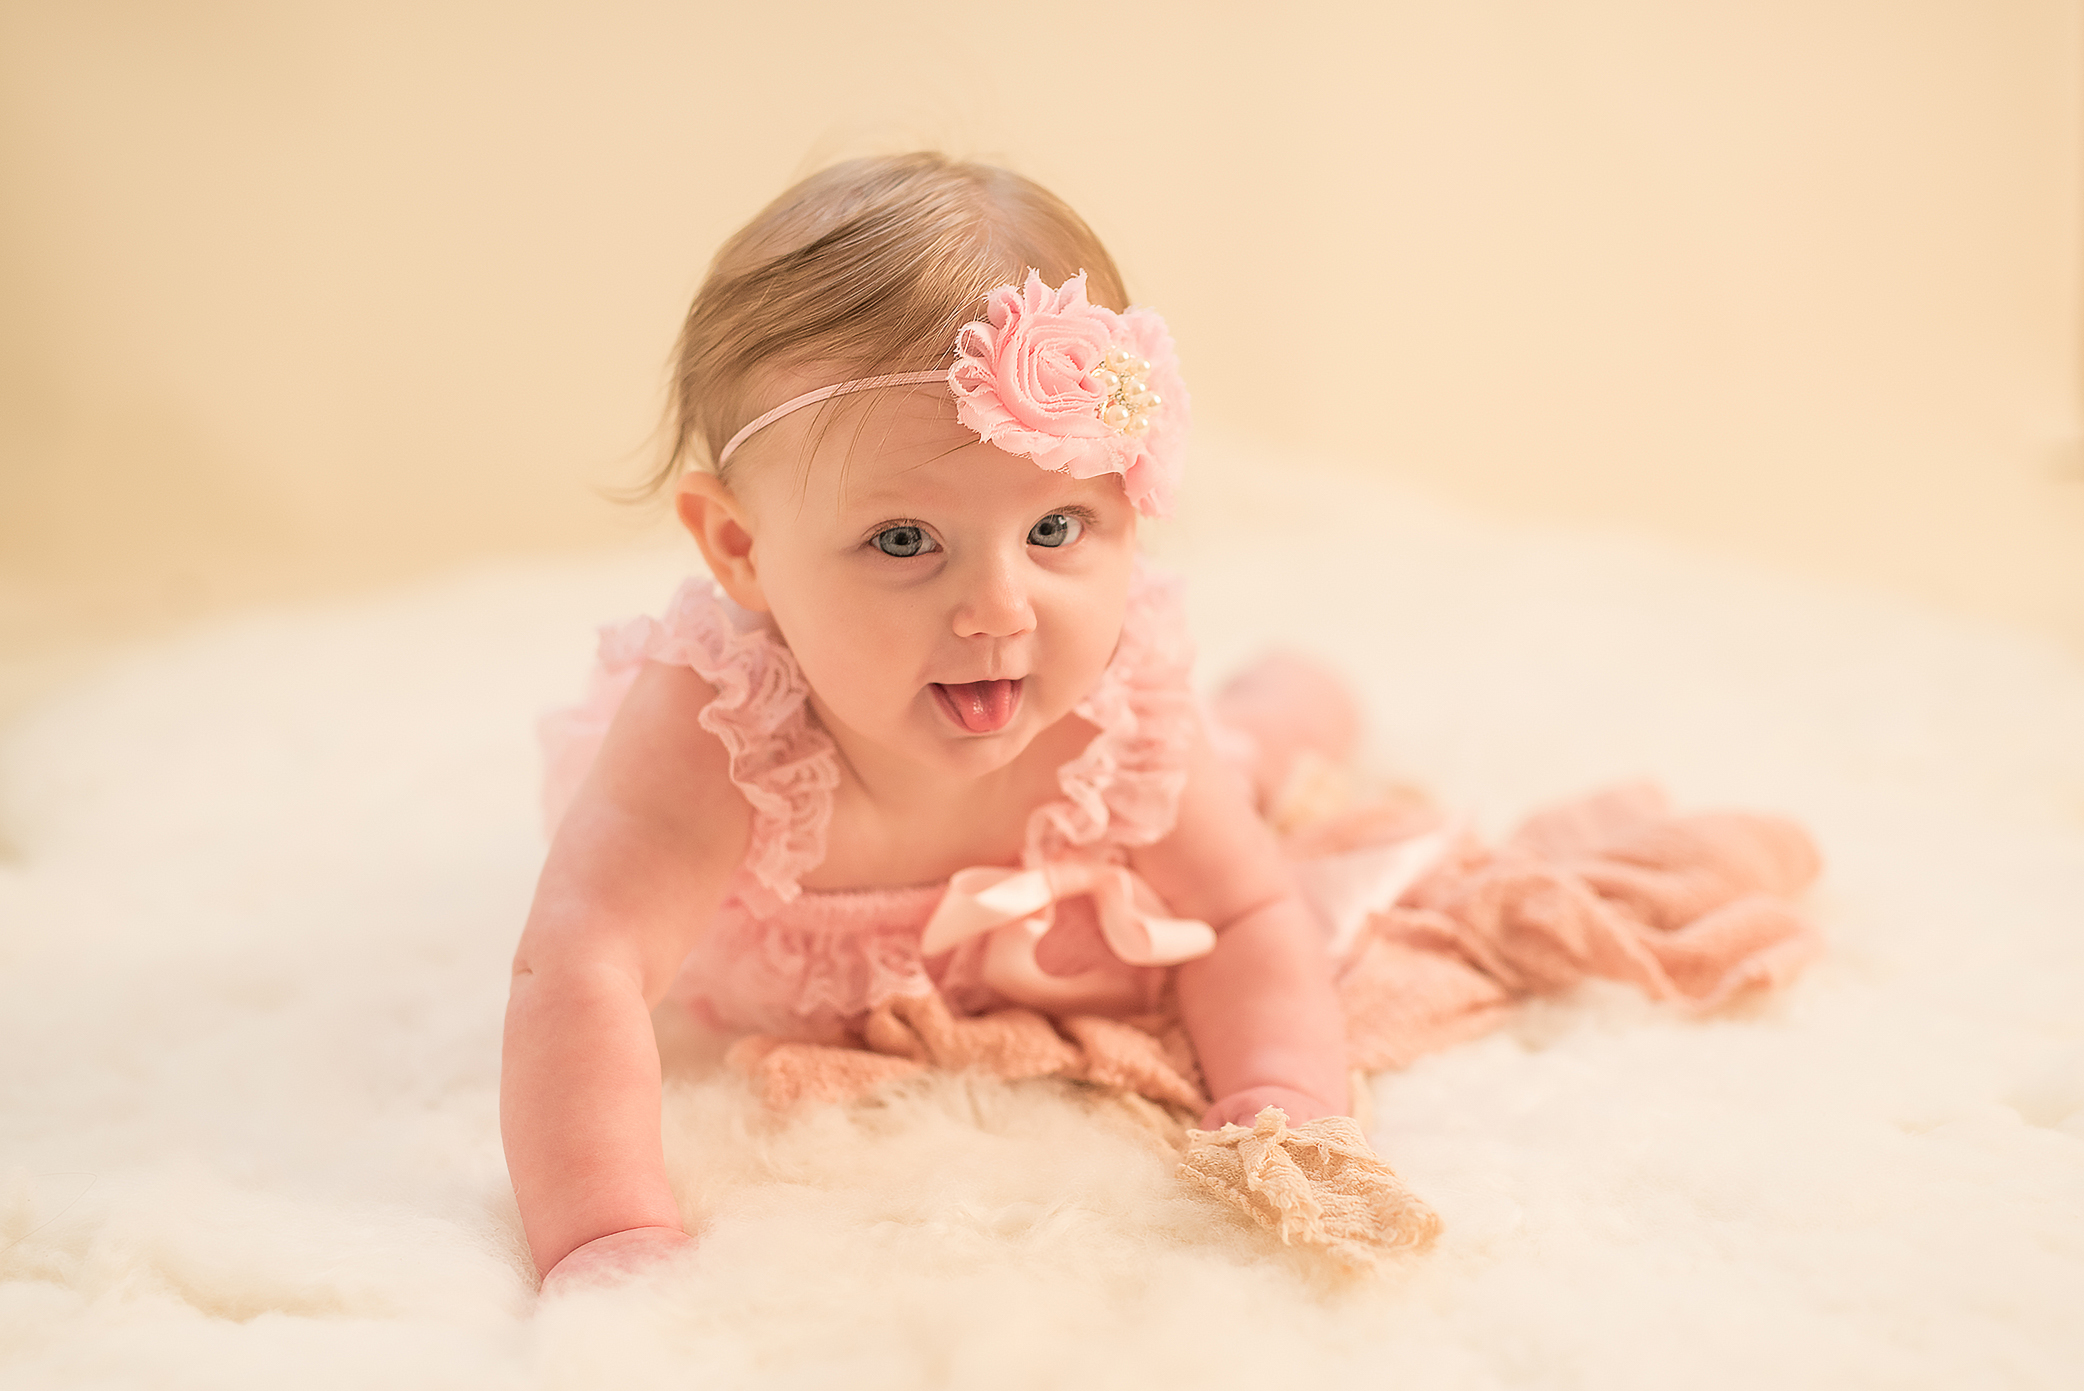 Pittsburgh Baby Photographer. Julie Bradley is Pittsburgh